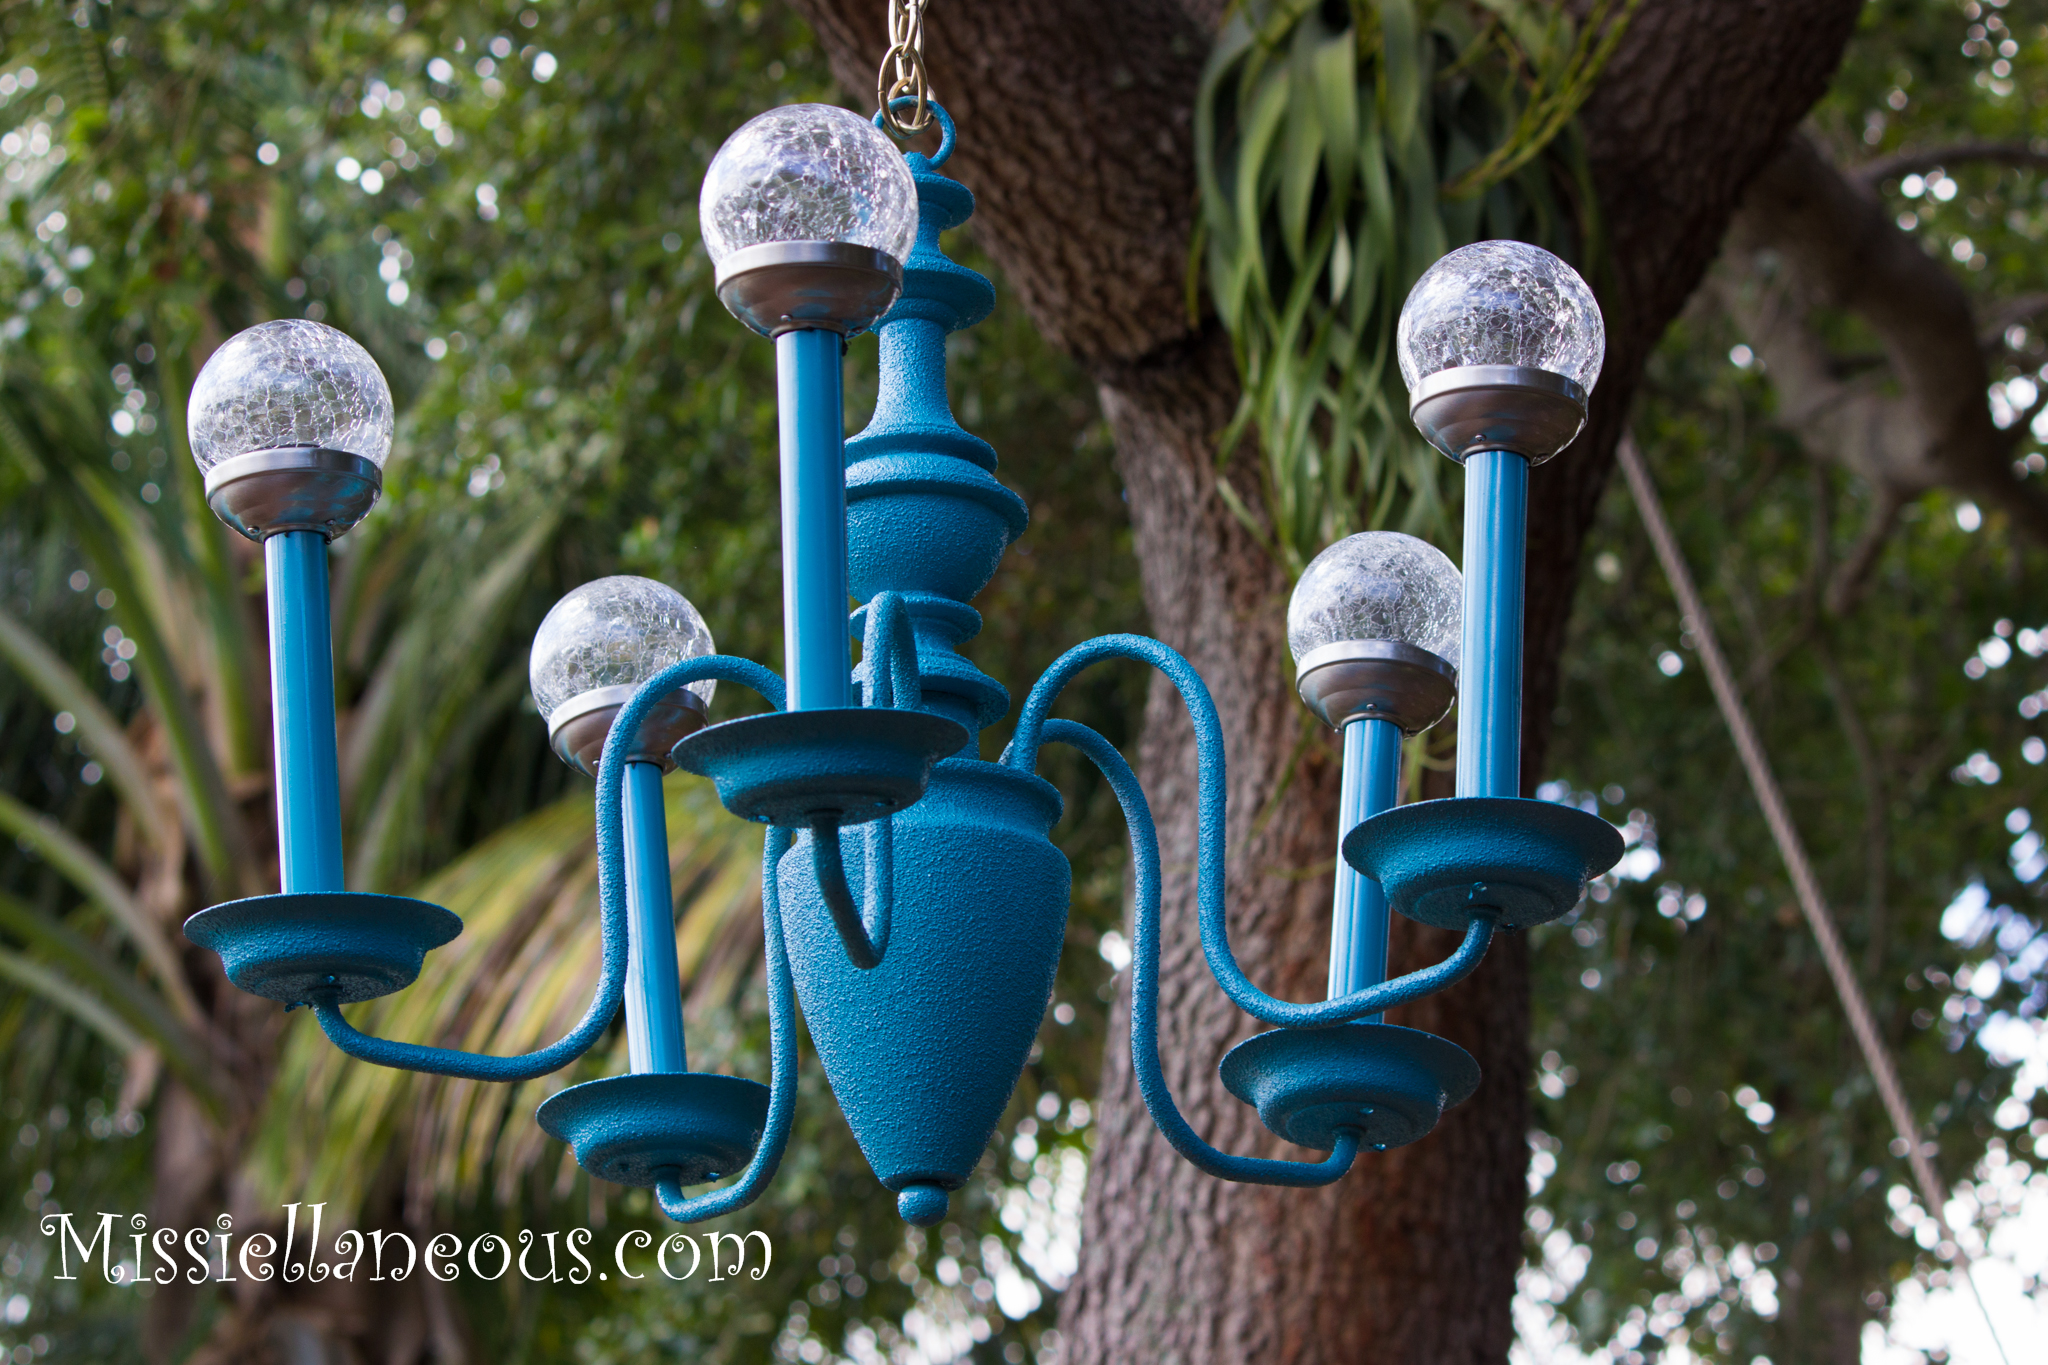 Upcycled Solar Garden Chandelier Missiellaneous